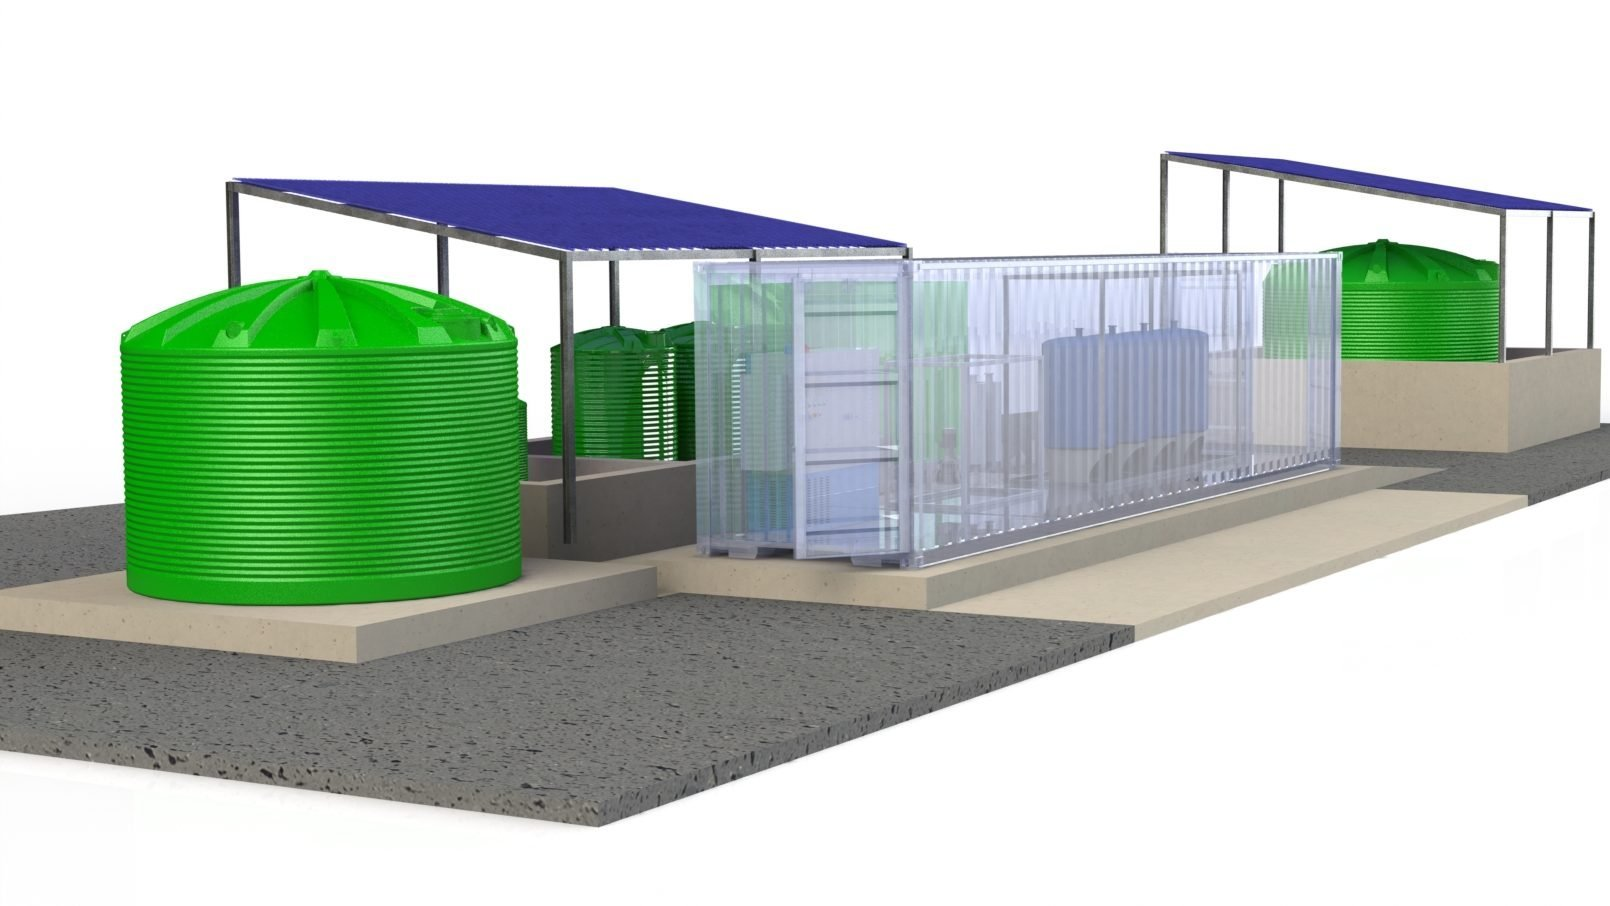 Clean TeQ Water To Provide Water Treatment Plant in Queensland, Australia